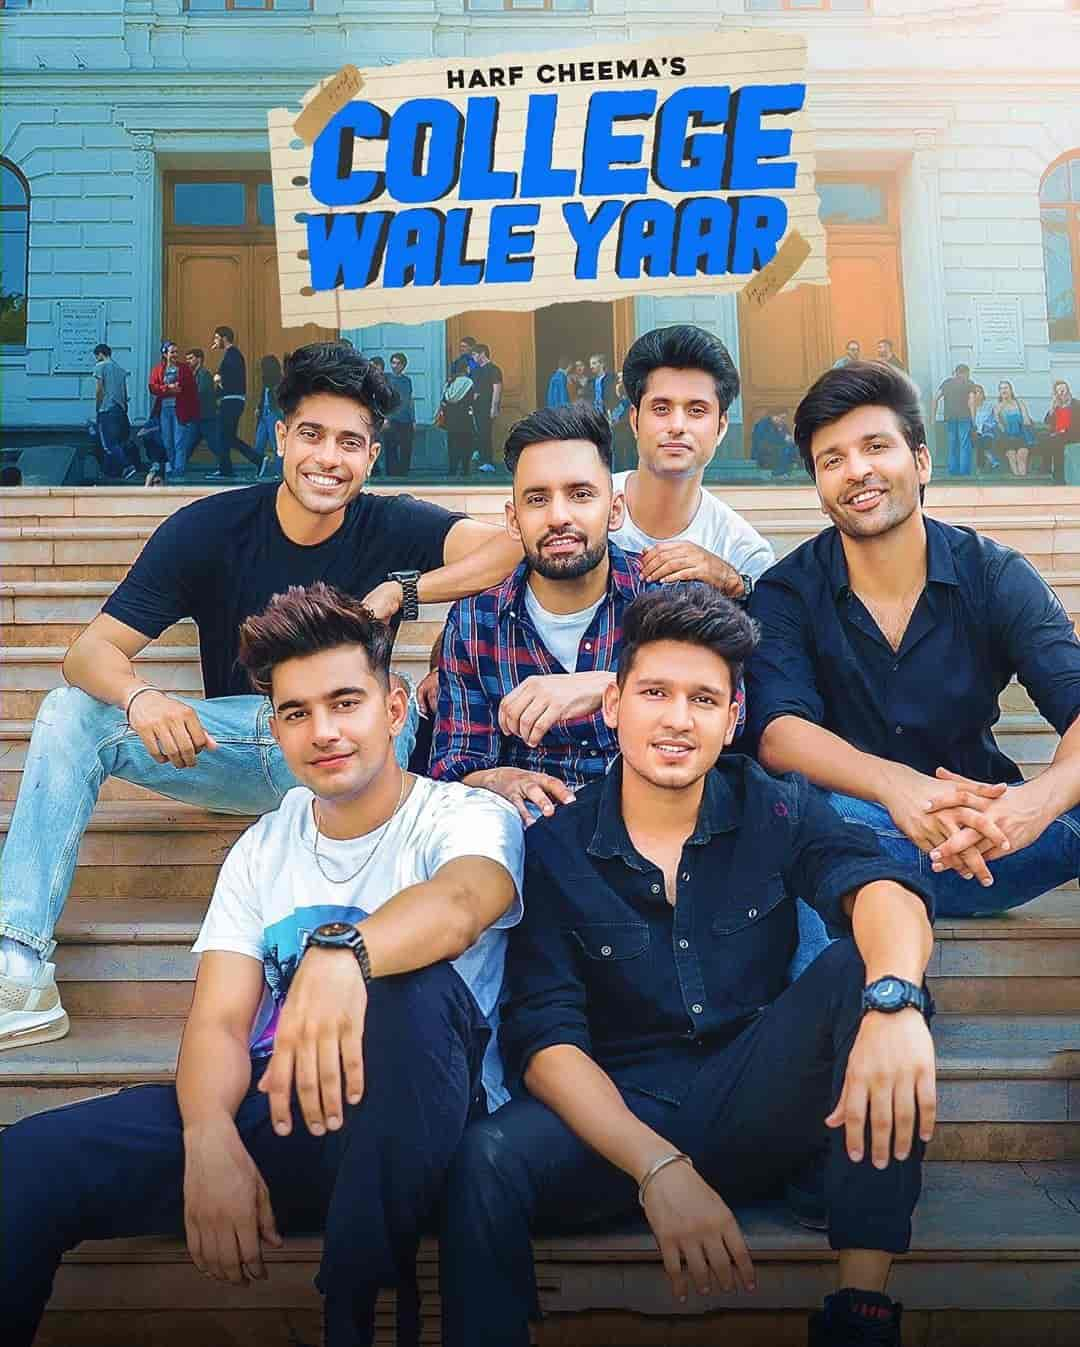 College Wale Yaar Punjabi Song Image By Harf Cheema